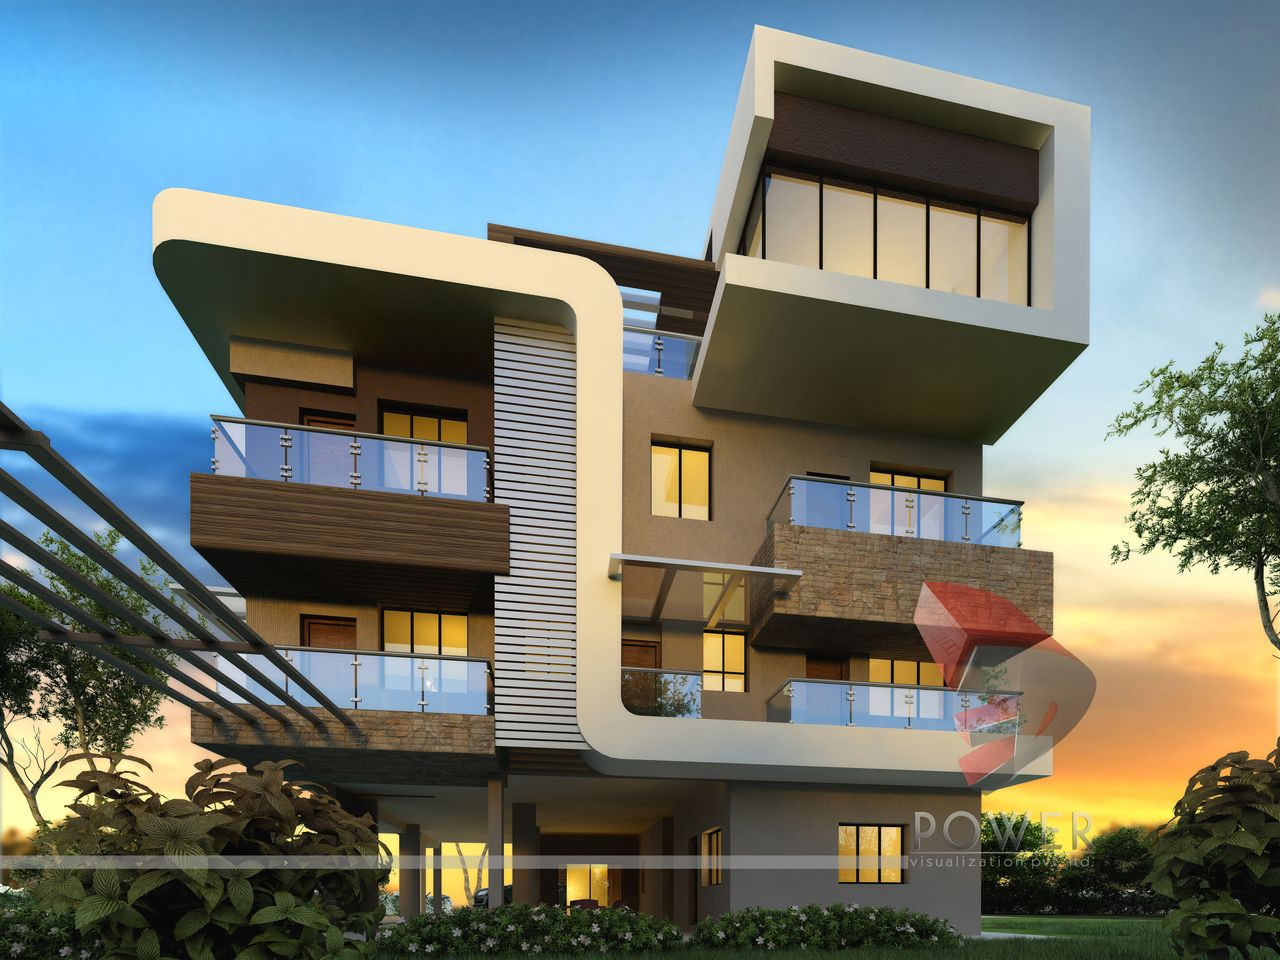 RESIDENTIAL TOWERS ROW HOUSES TOWNSHIP DESIGNS VILLA BUNGALOW